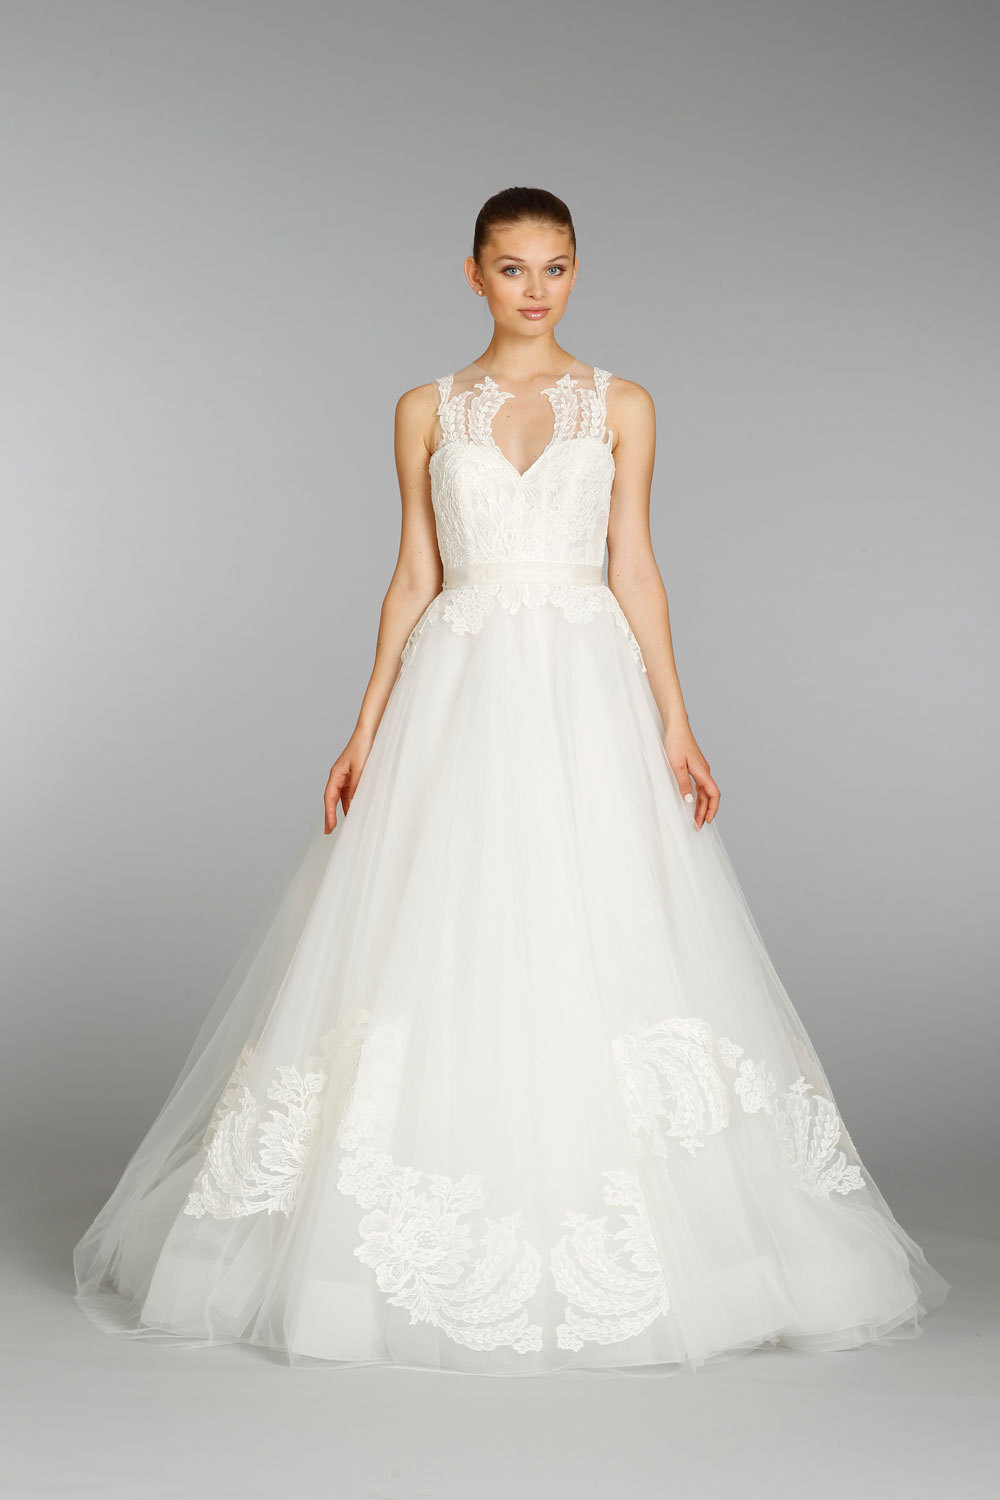 Lazaro wedding dress fall 2013 bridal 3366 for Where to buy lazaro wedding dresses